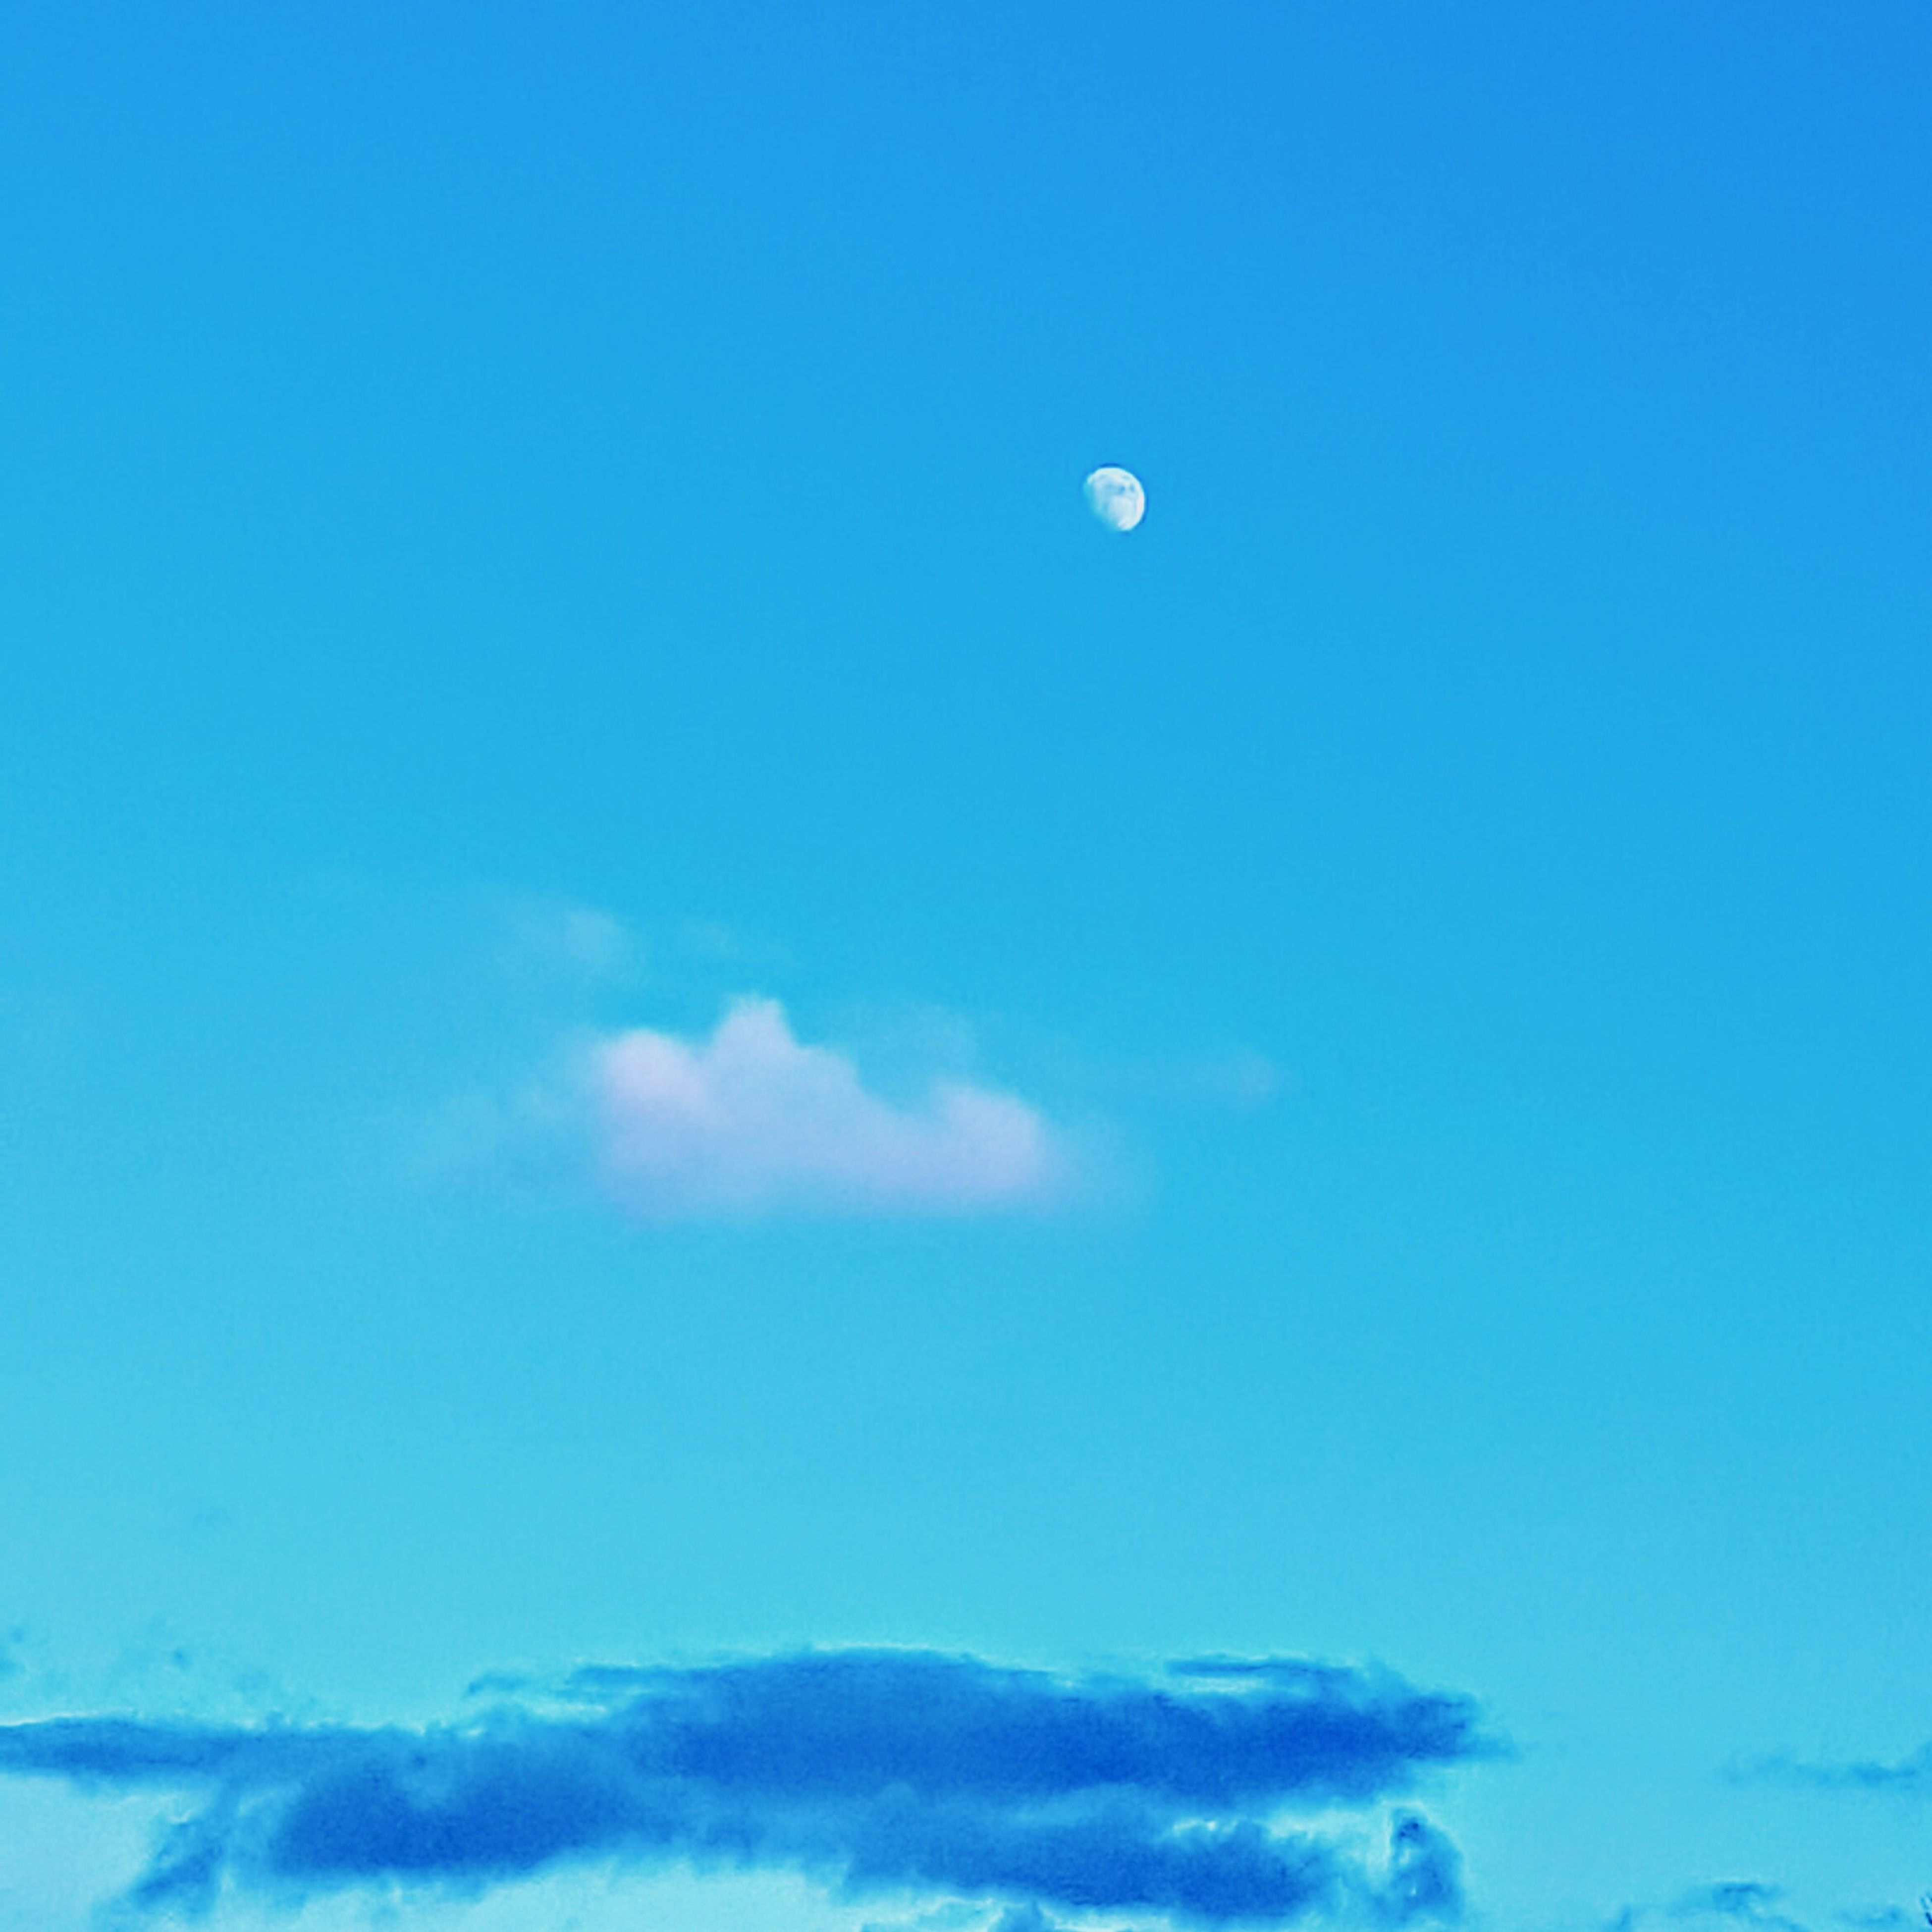 sky, nature, moon, blue, beauty in nature, tranquility, scenics, flying, tranquil scene, no people, low angle view, cloud - sky, idyllic, outdoors, day, half moon, astronomy